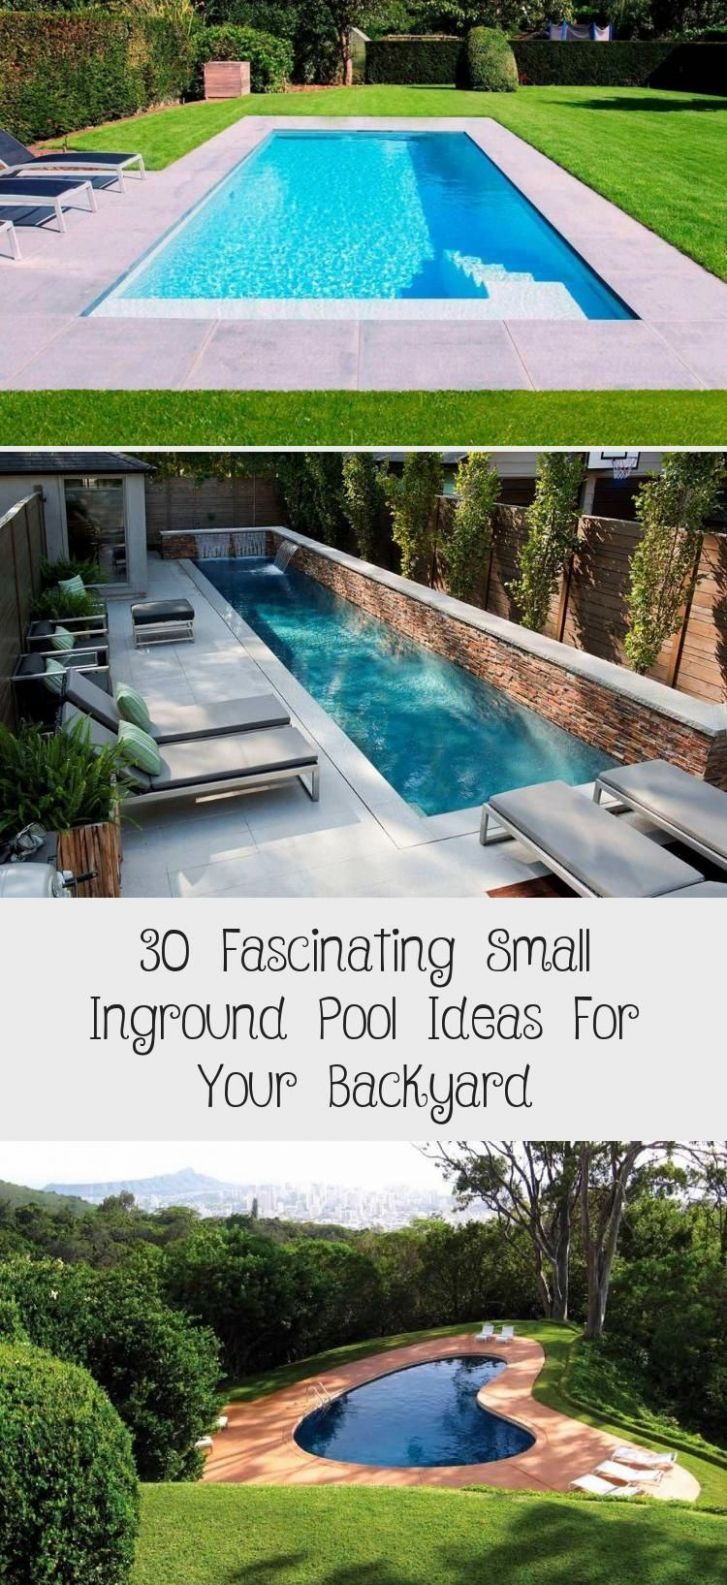 12 Fascinating Small Inground Pool Ideas For Your Backyard - Home ...